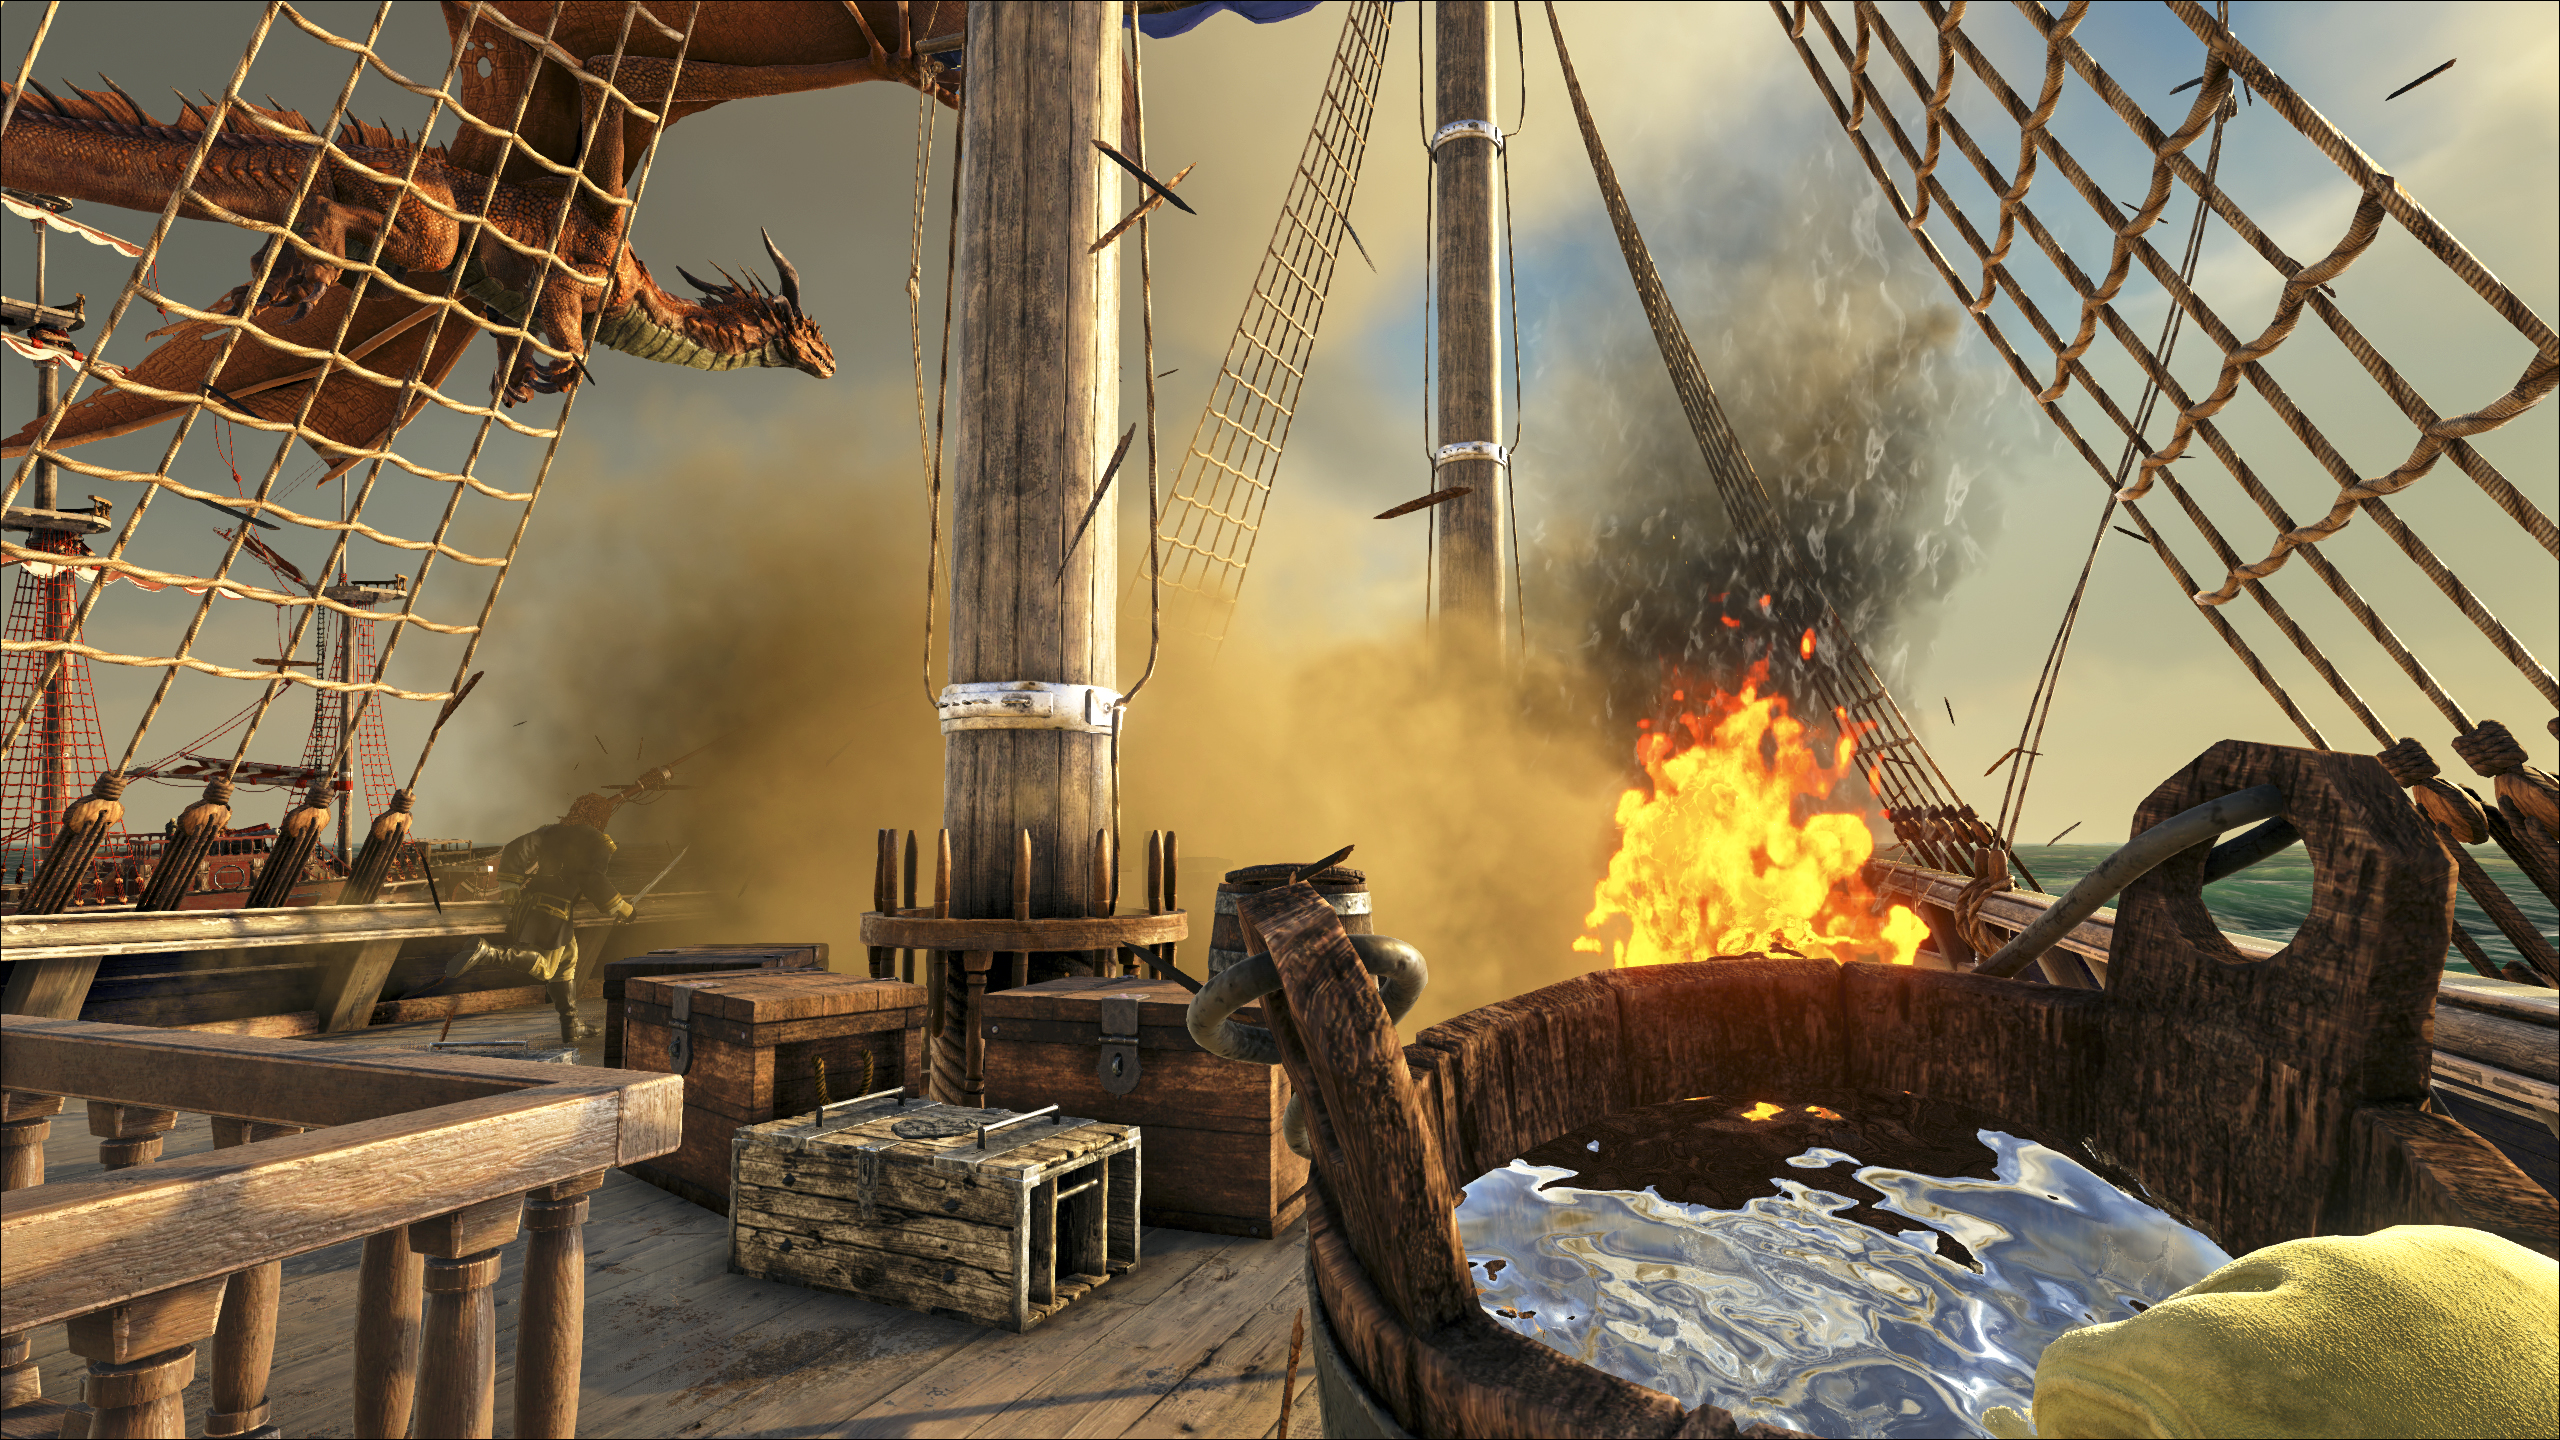 Dec 19, 2018 Pirate MMO Atlas delayed 2 more days: now it'll